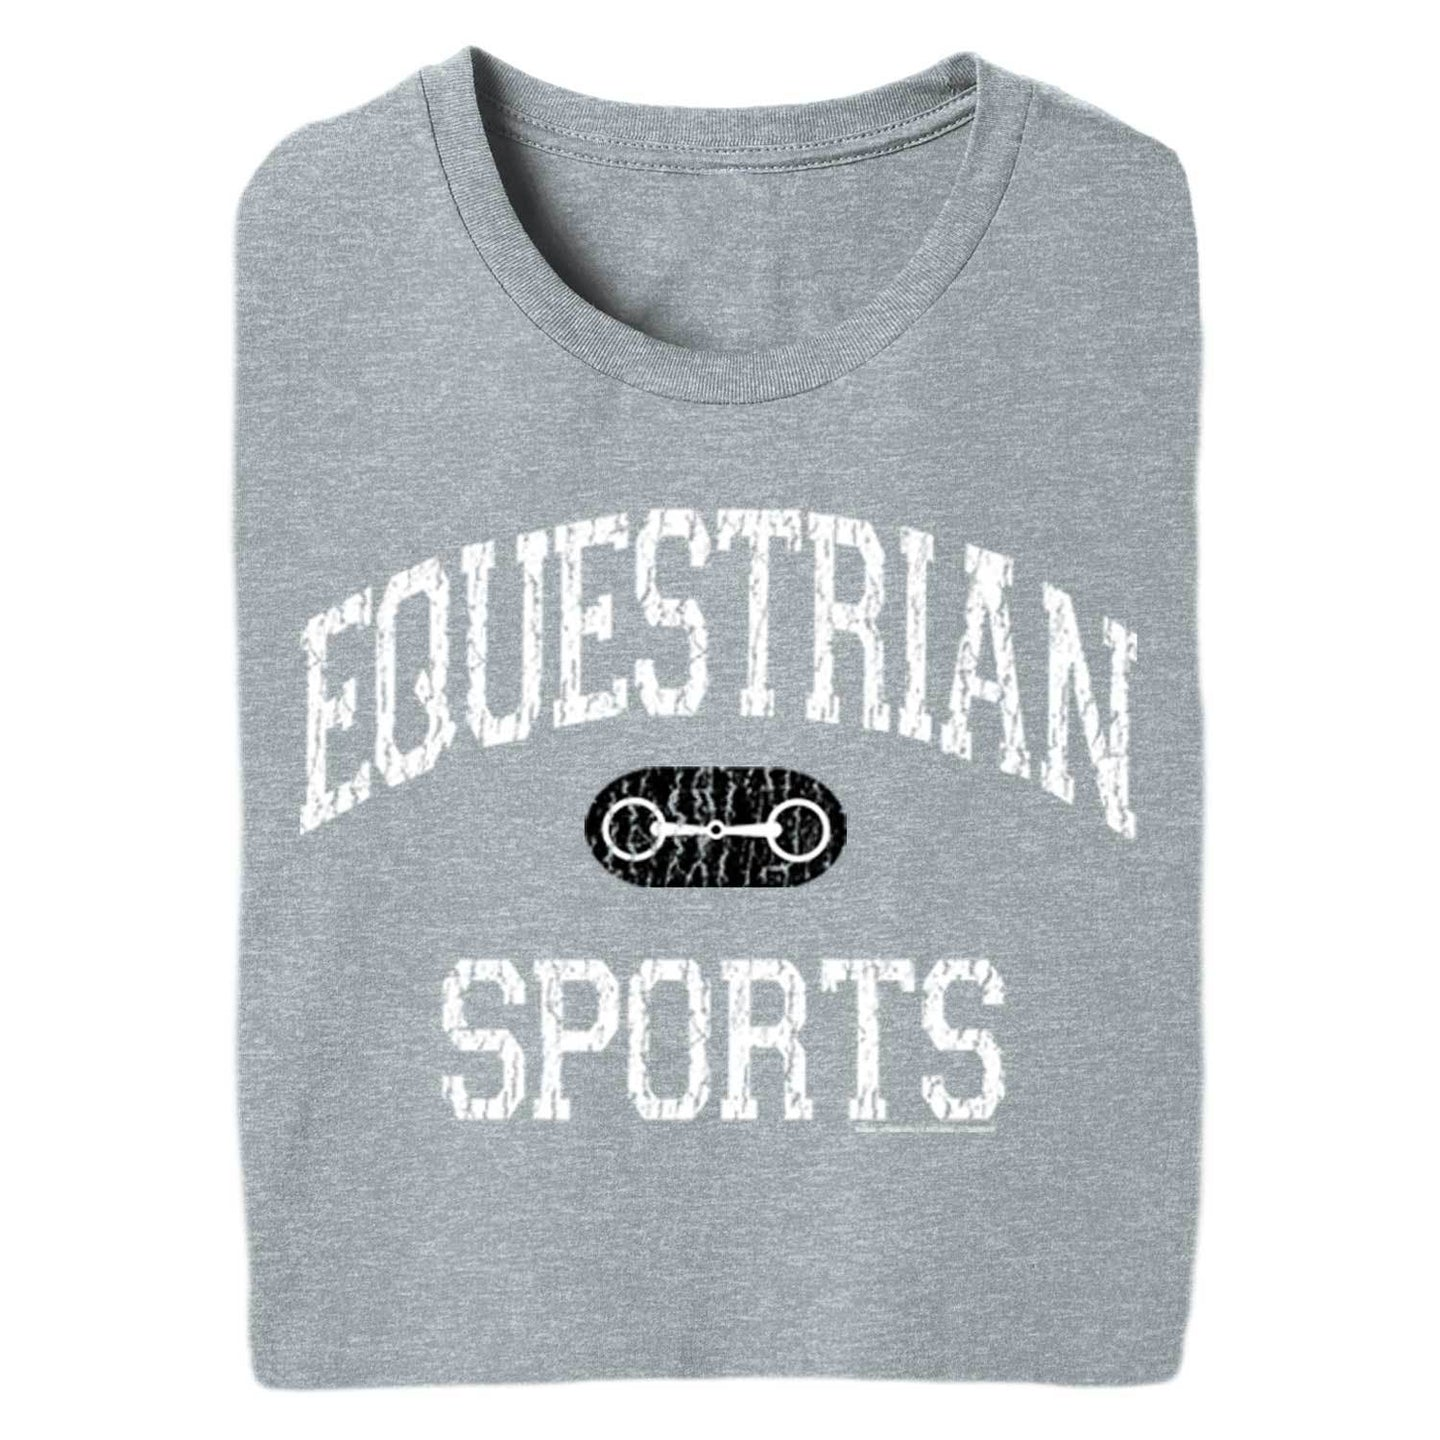 Equestrian Sports Adult Short Sleeve Tee 20142